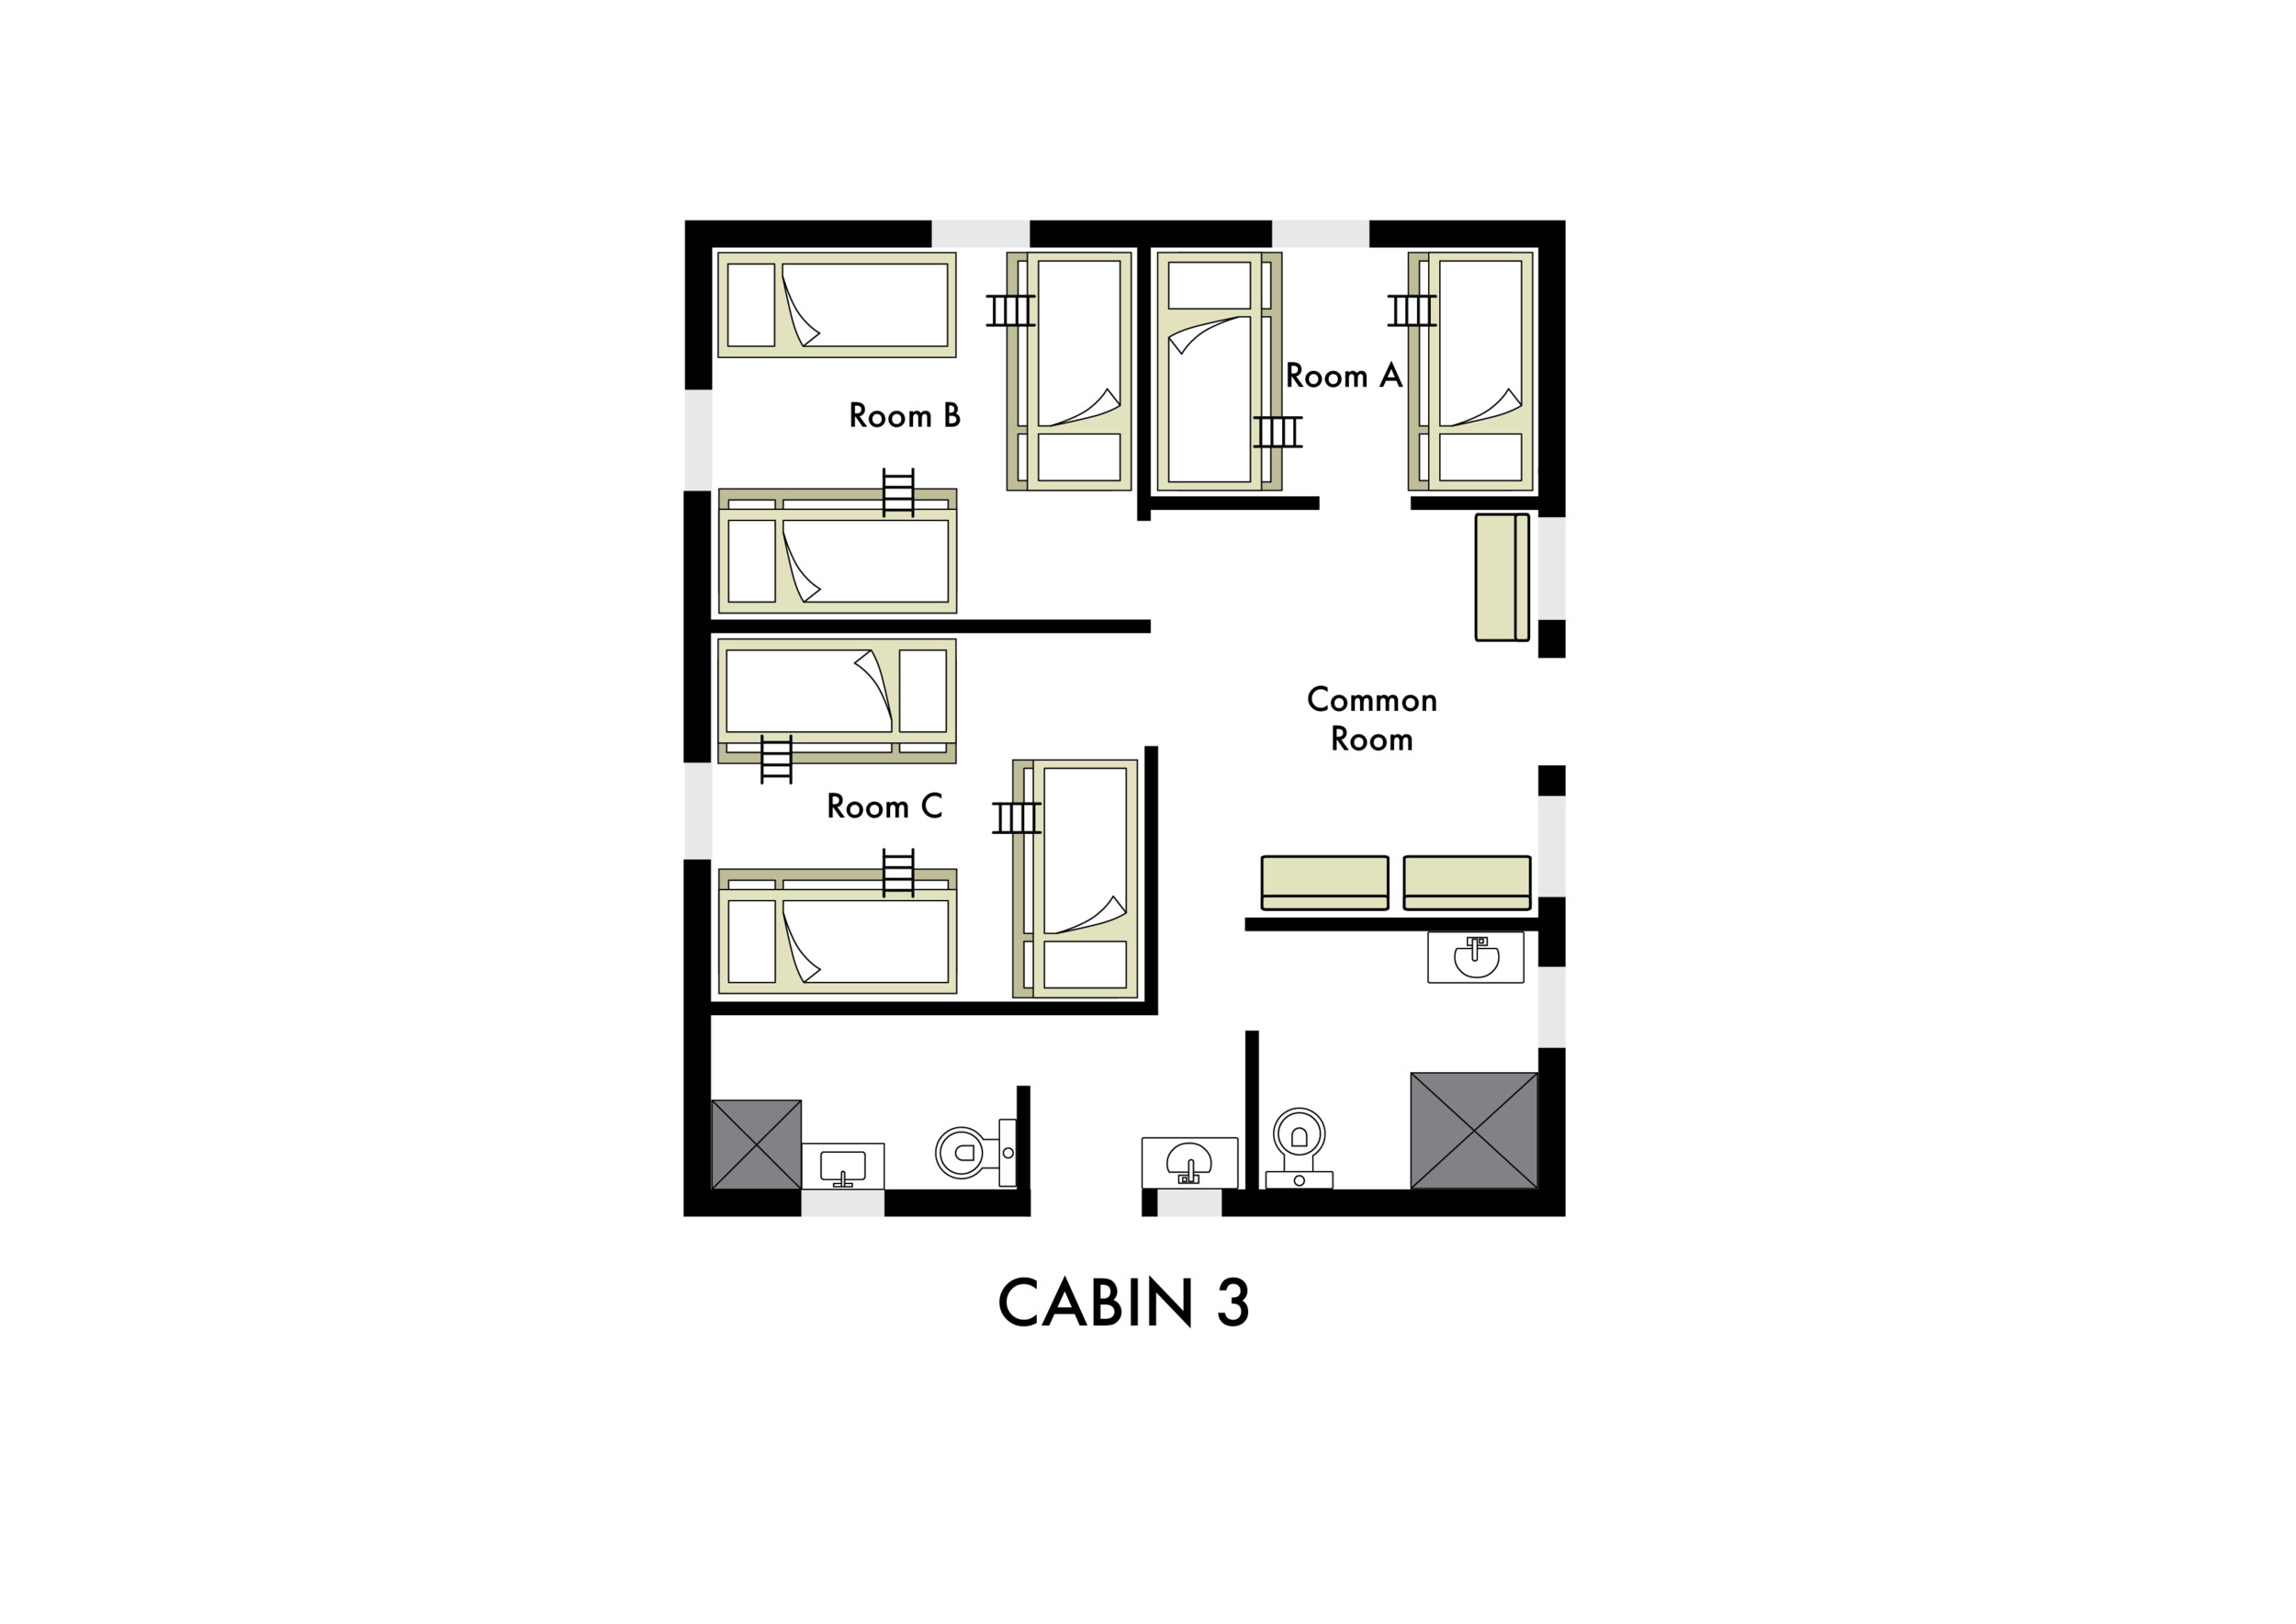 Cabin 3_02.png